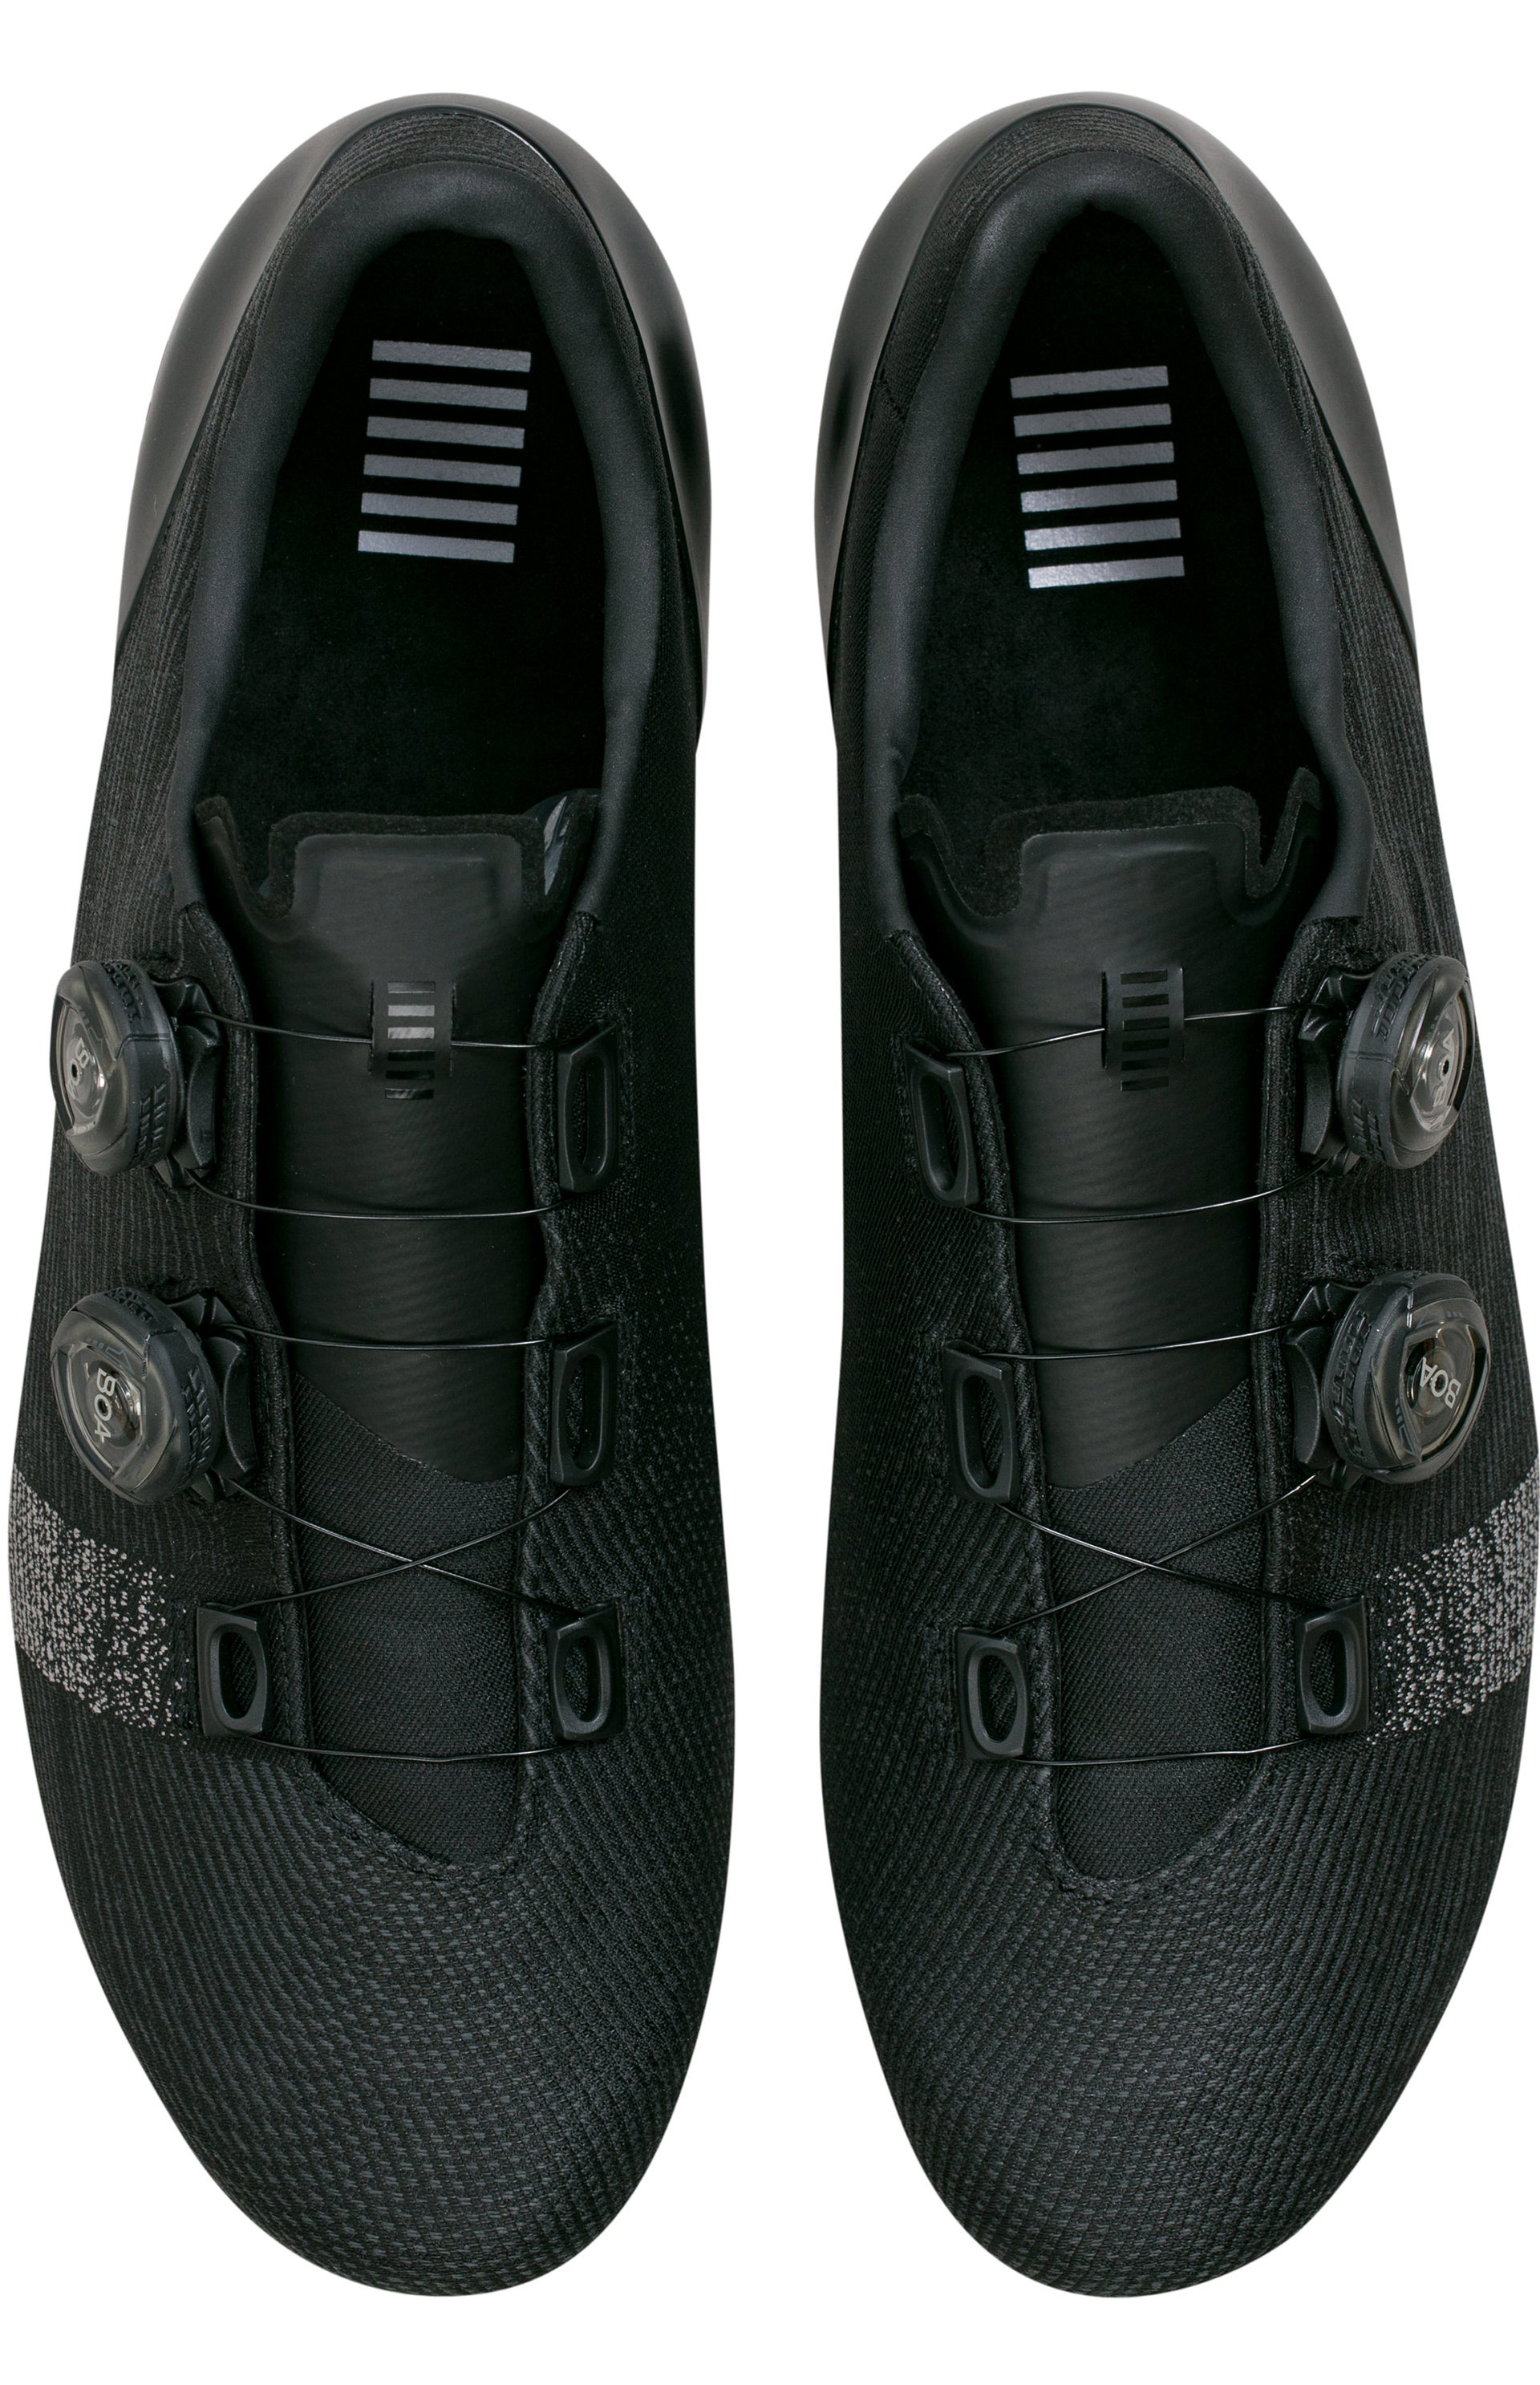 Rapha Pro Team cycling shoes in black